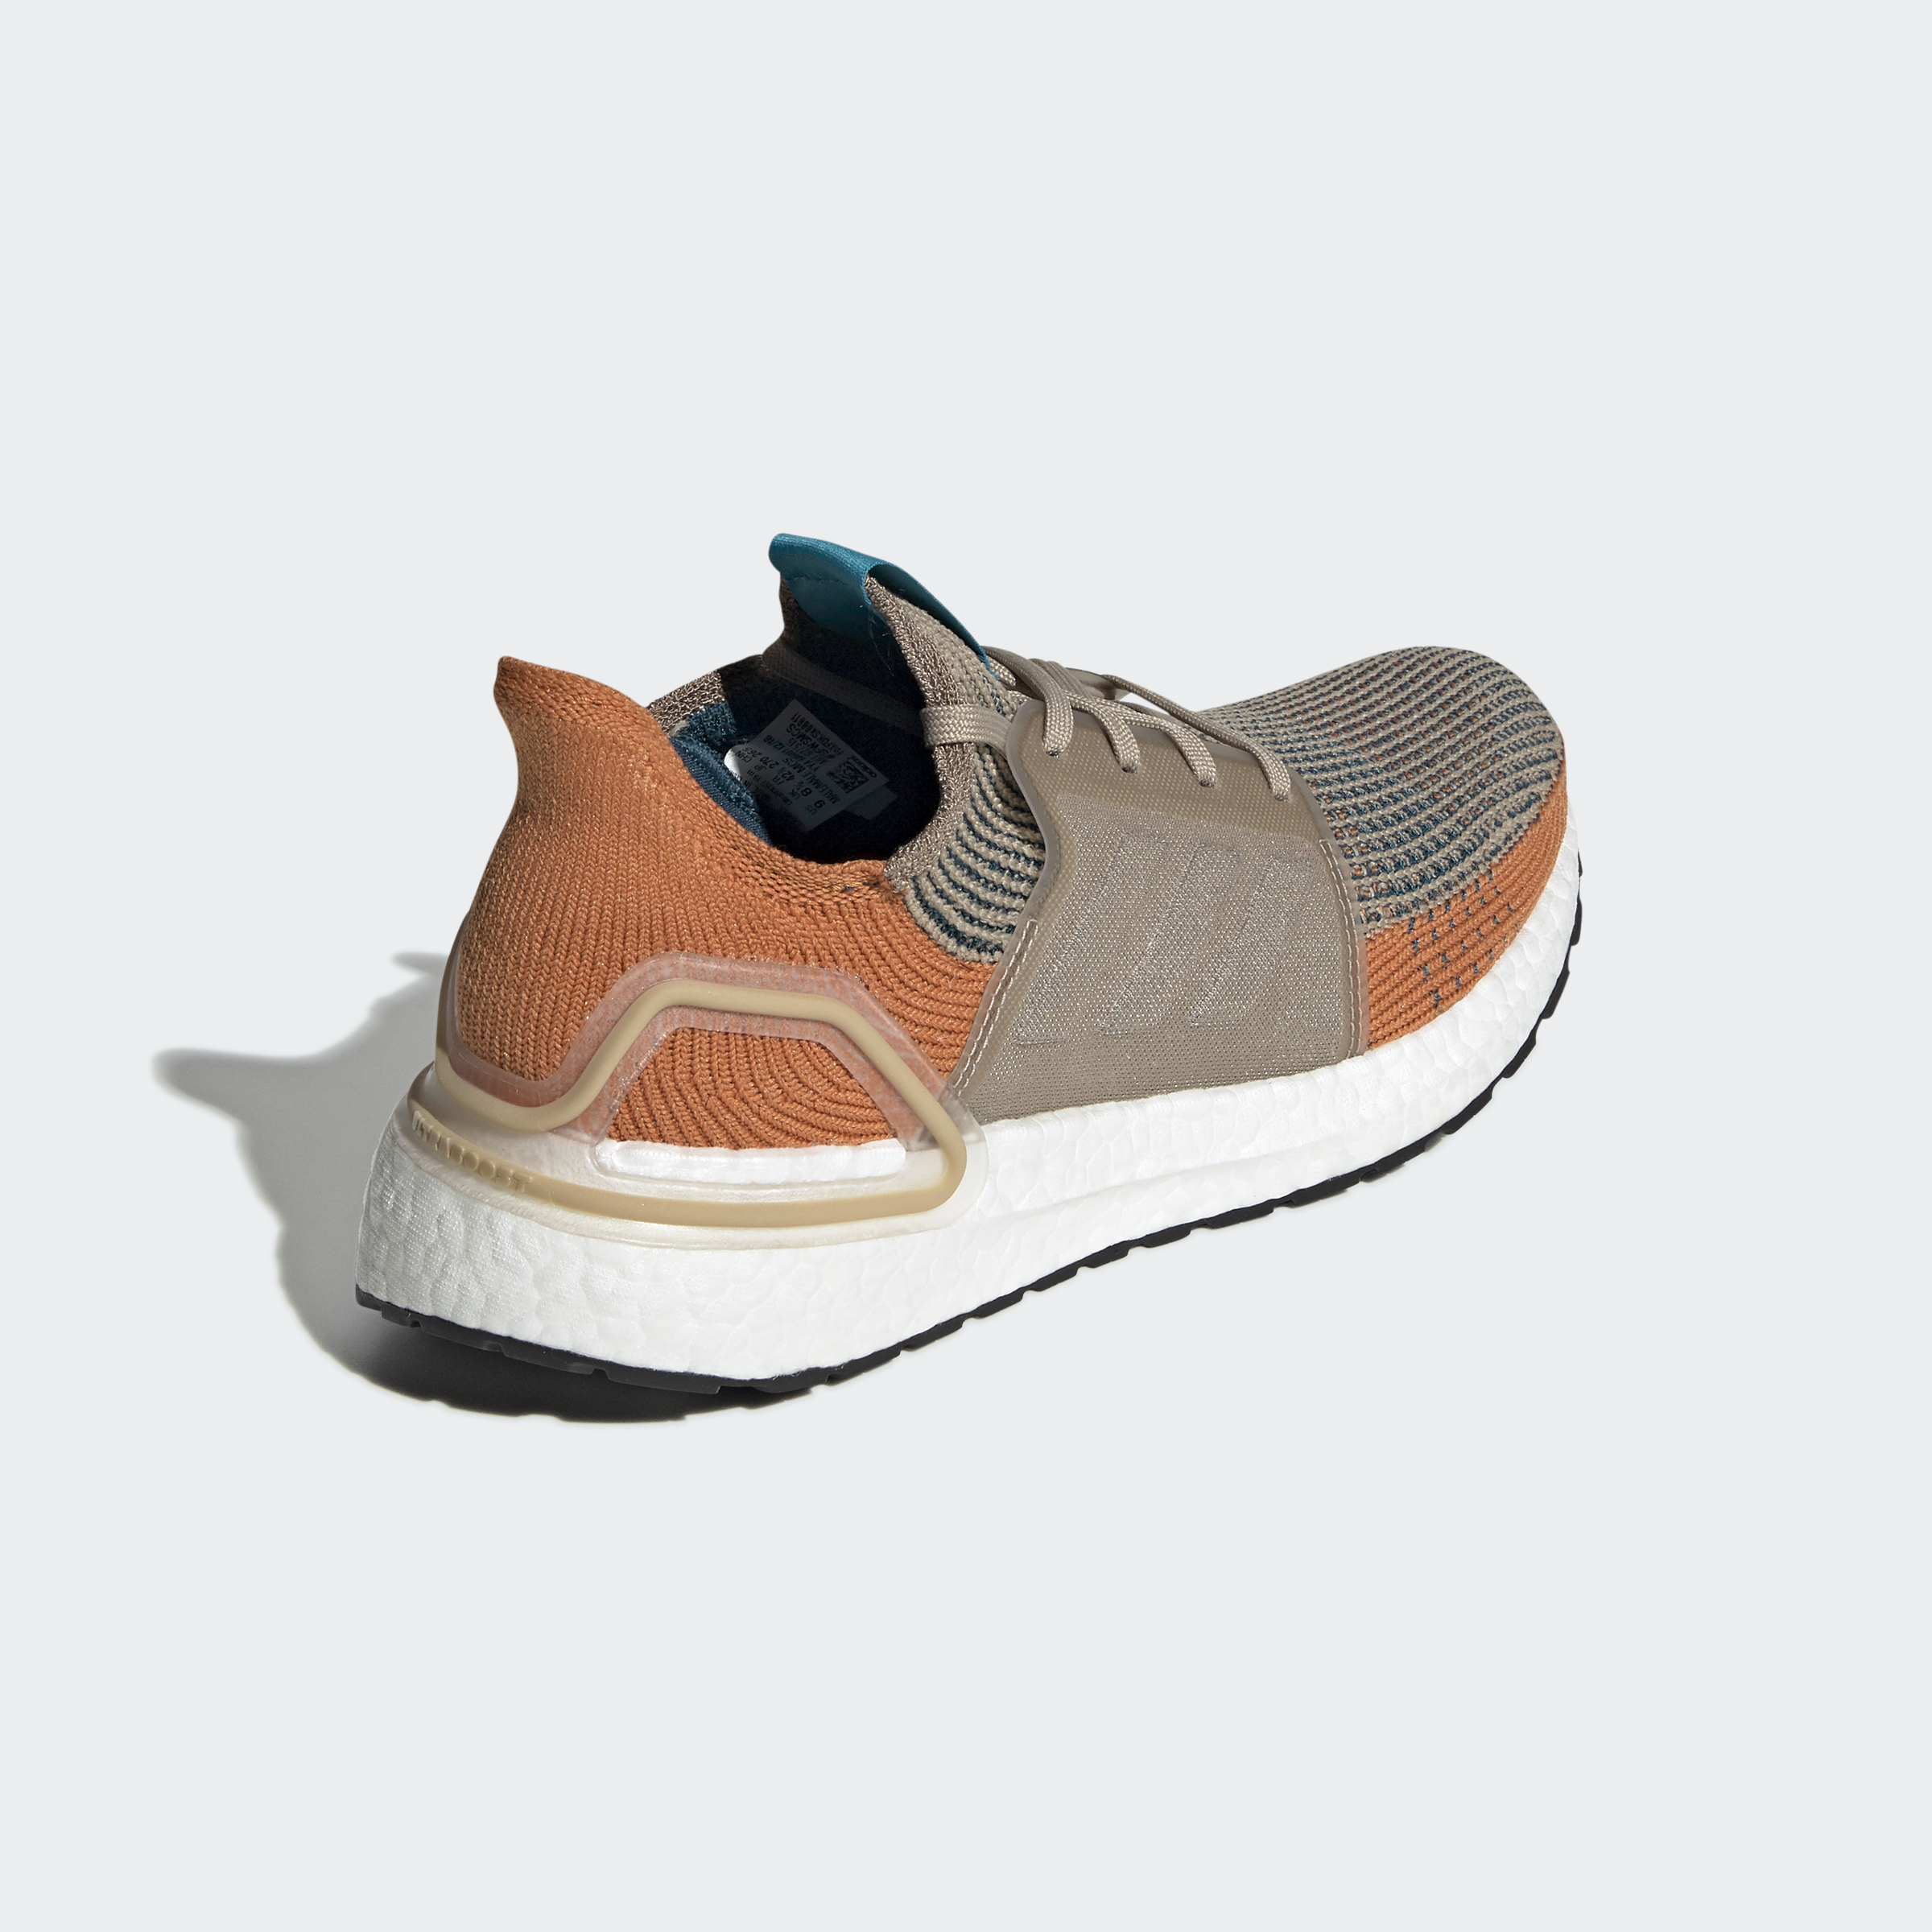 adidas-Ultraboost-19-Shoes-Athletic-amp-Sneakers thumbnail 114